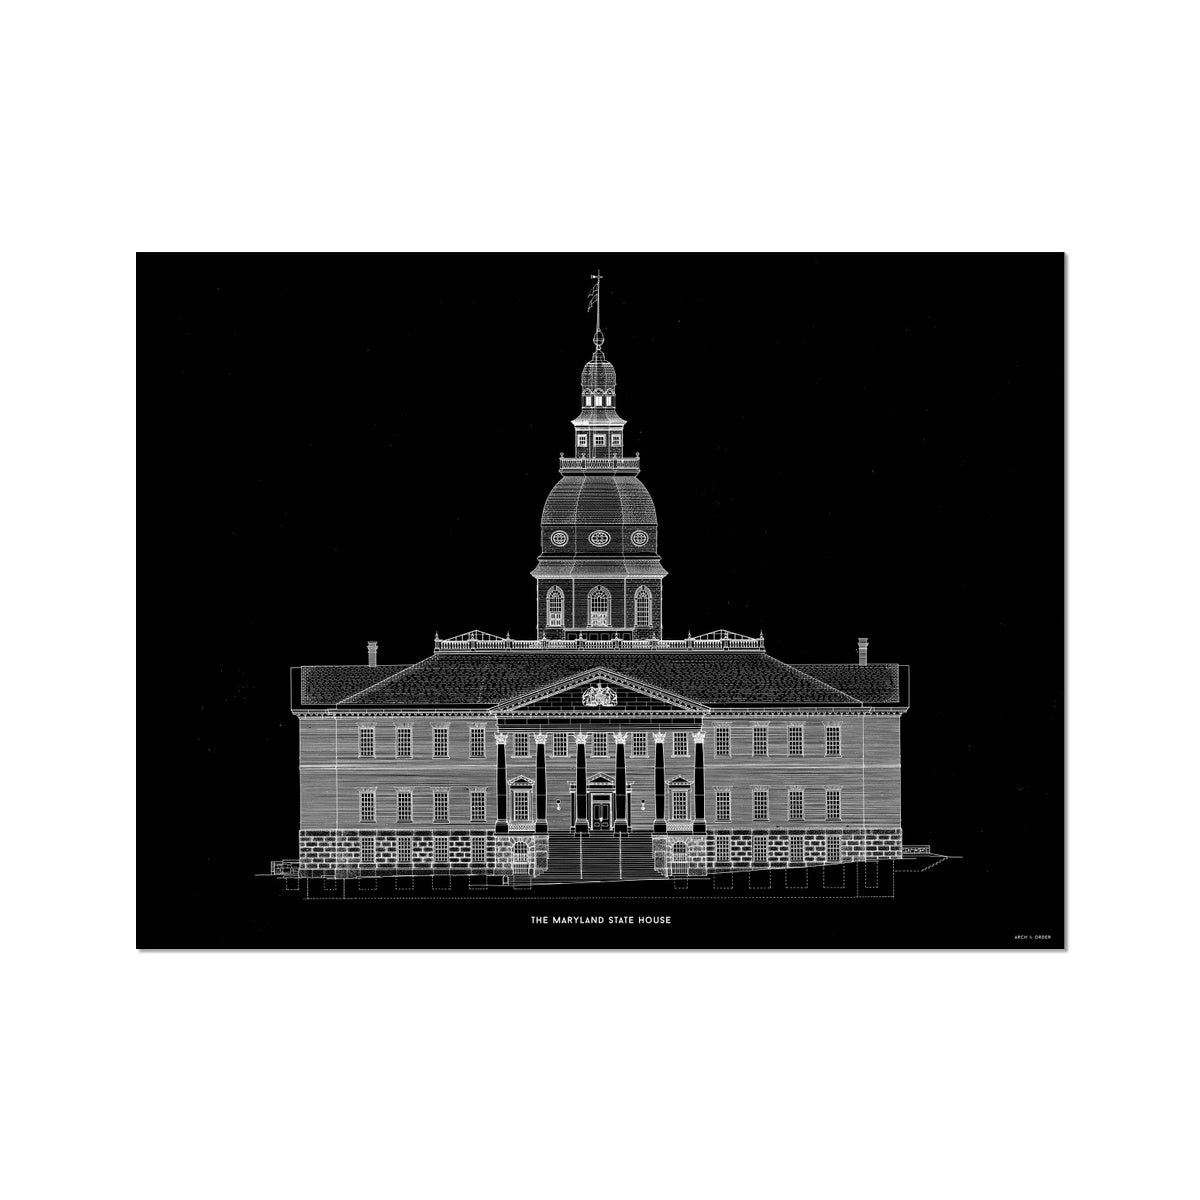 The Maryland State House - Northwest Elevation - Black -  Etching Paper Print